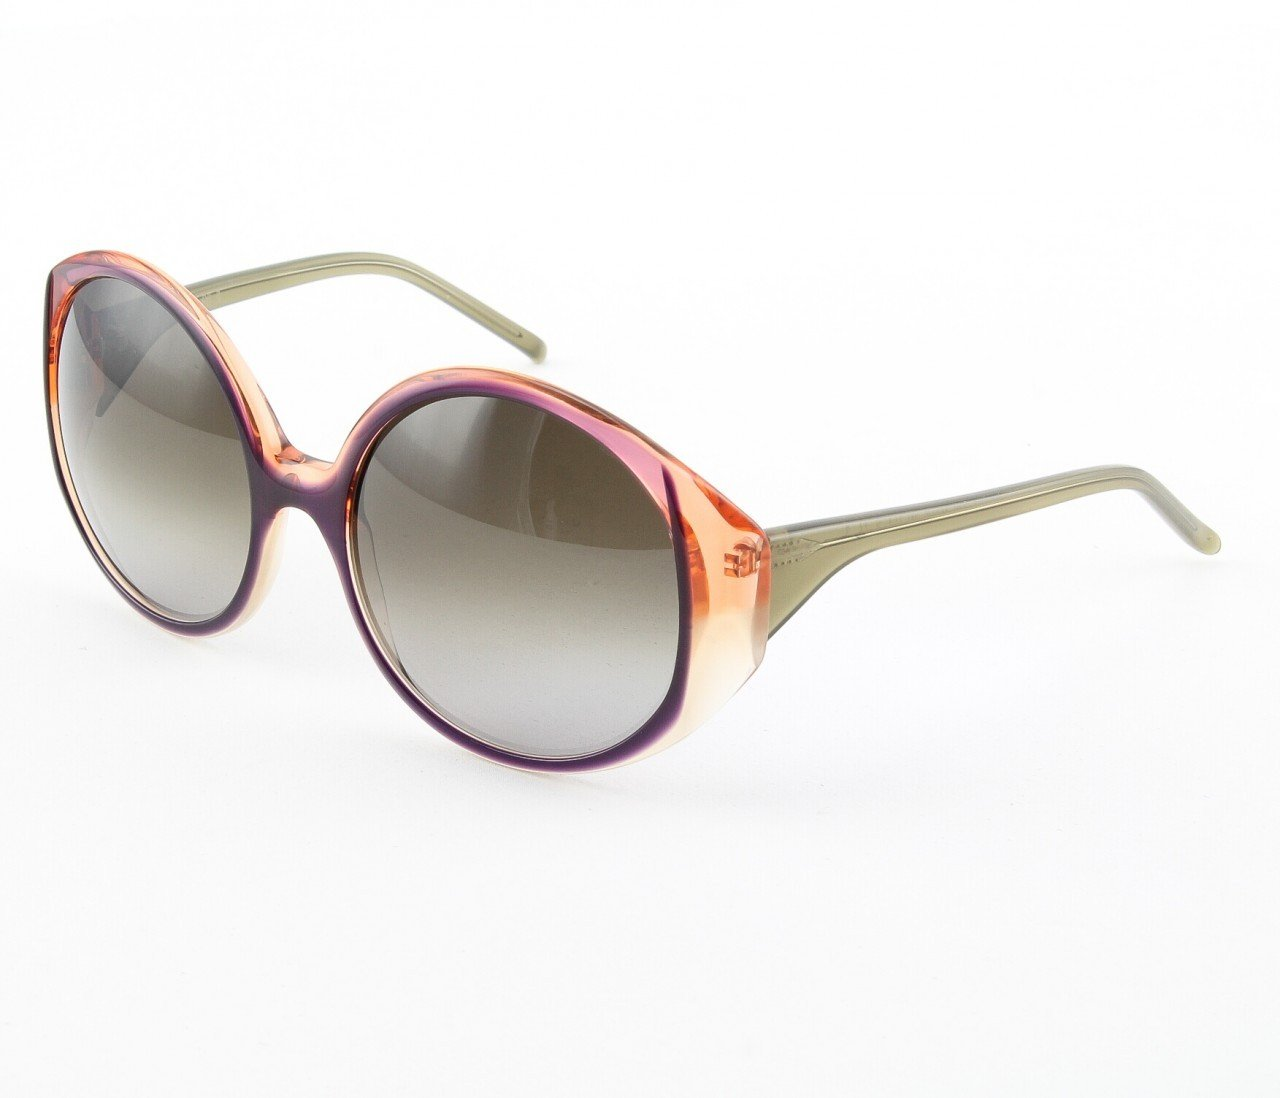 Marni MA217 Sunglasses 06 Purple Frame w/ Crystal Orange and Cream Accents